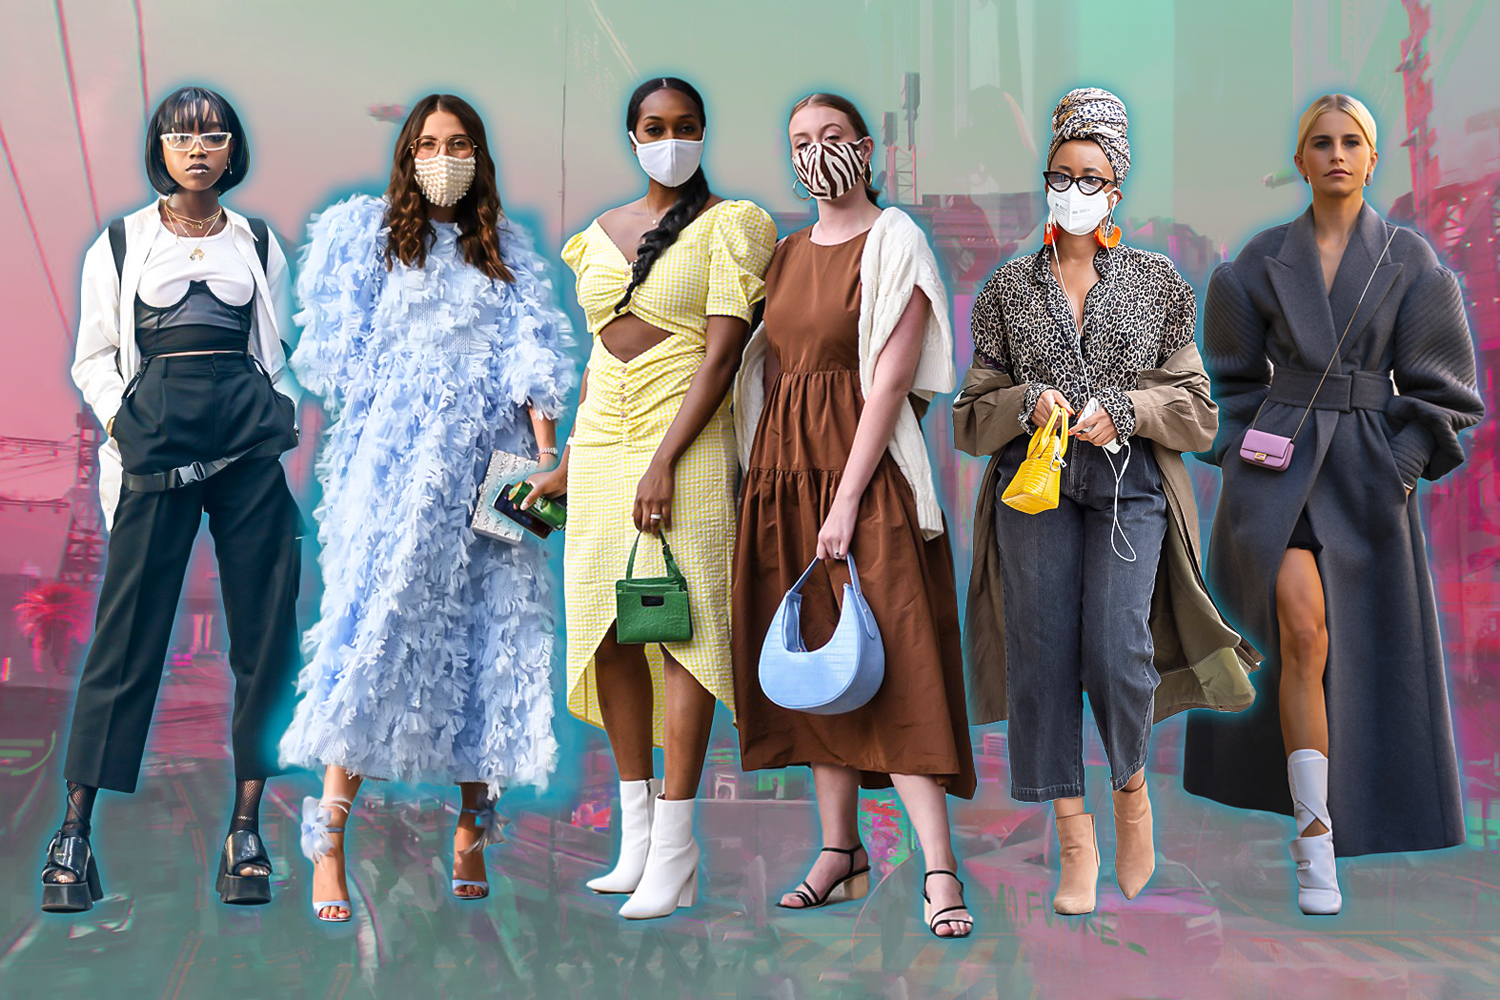 a creative collage with varous street fashion outfits